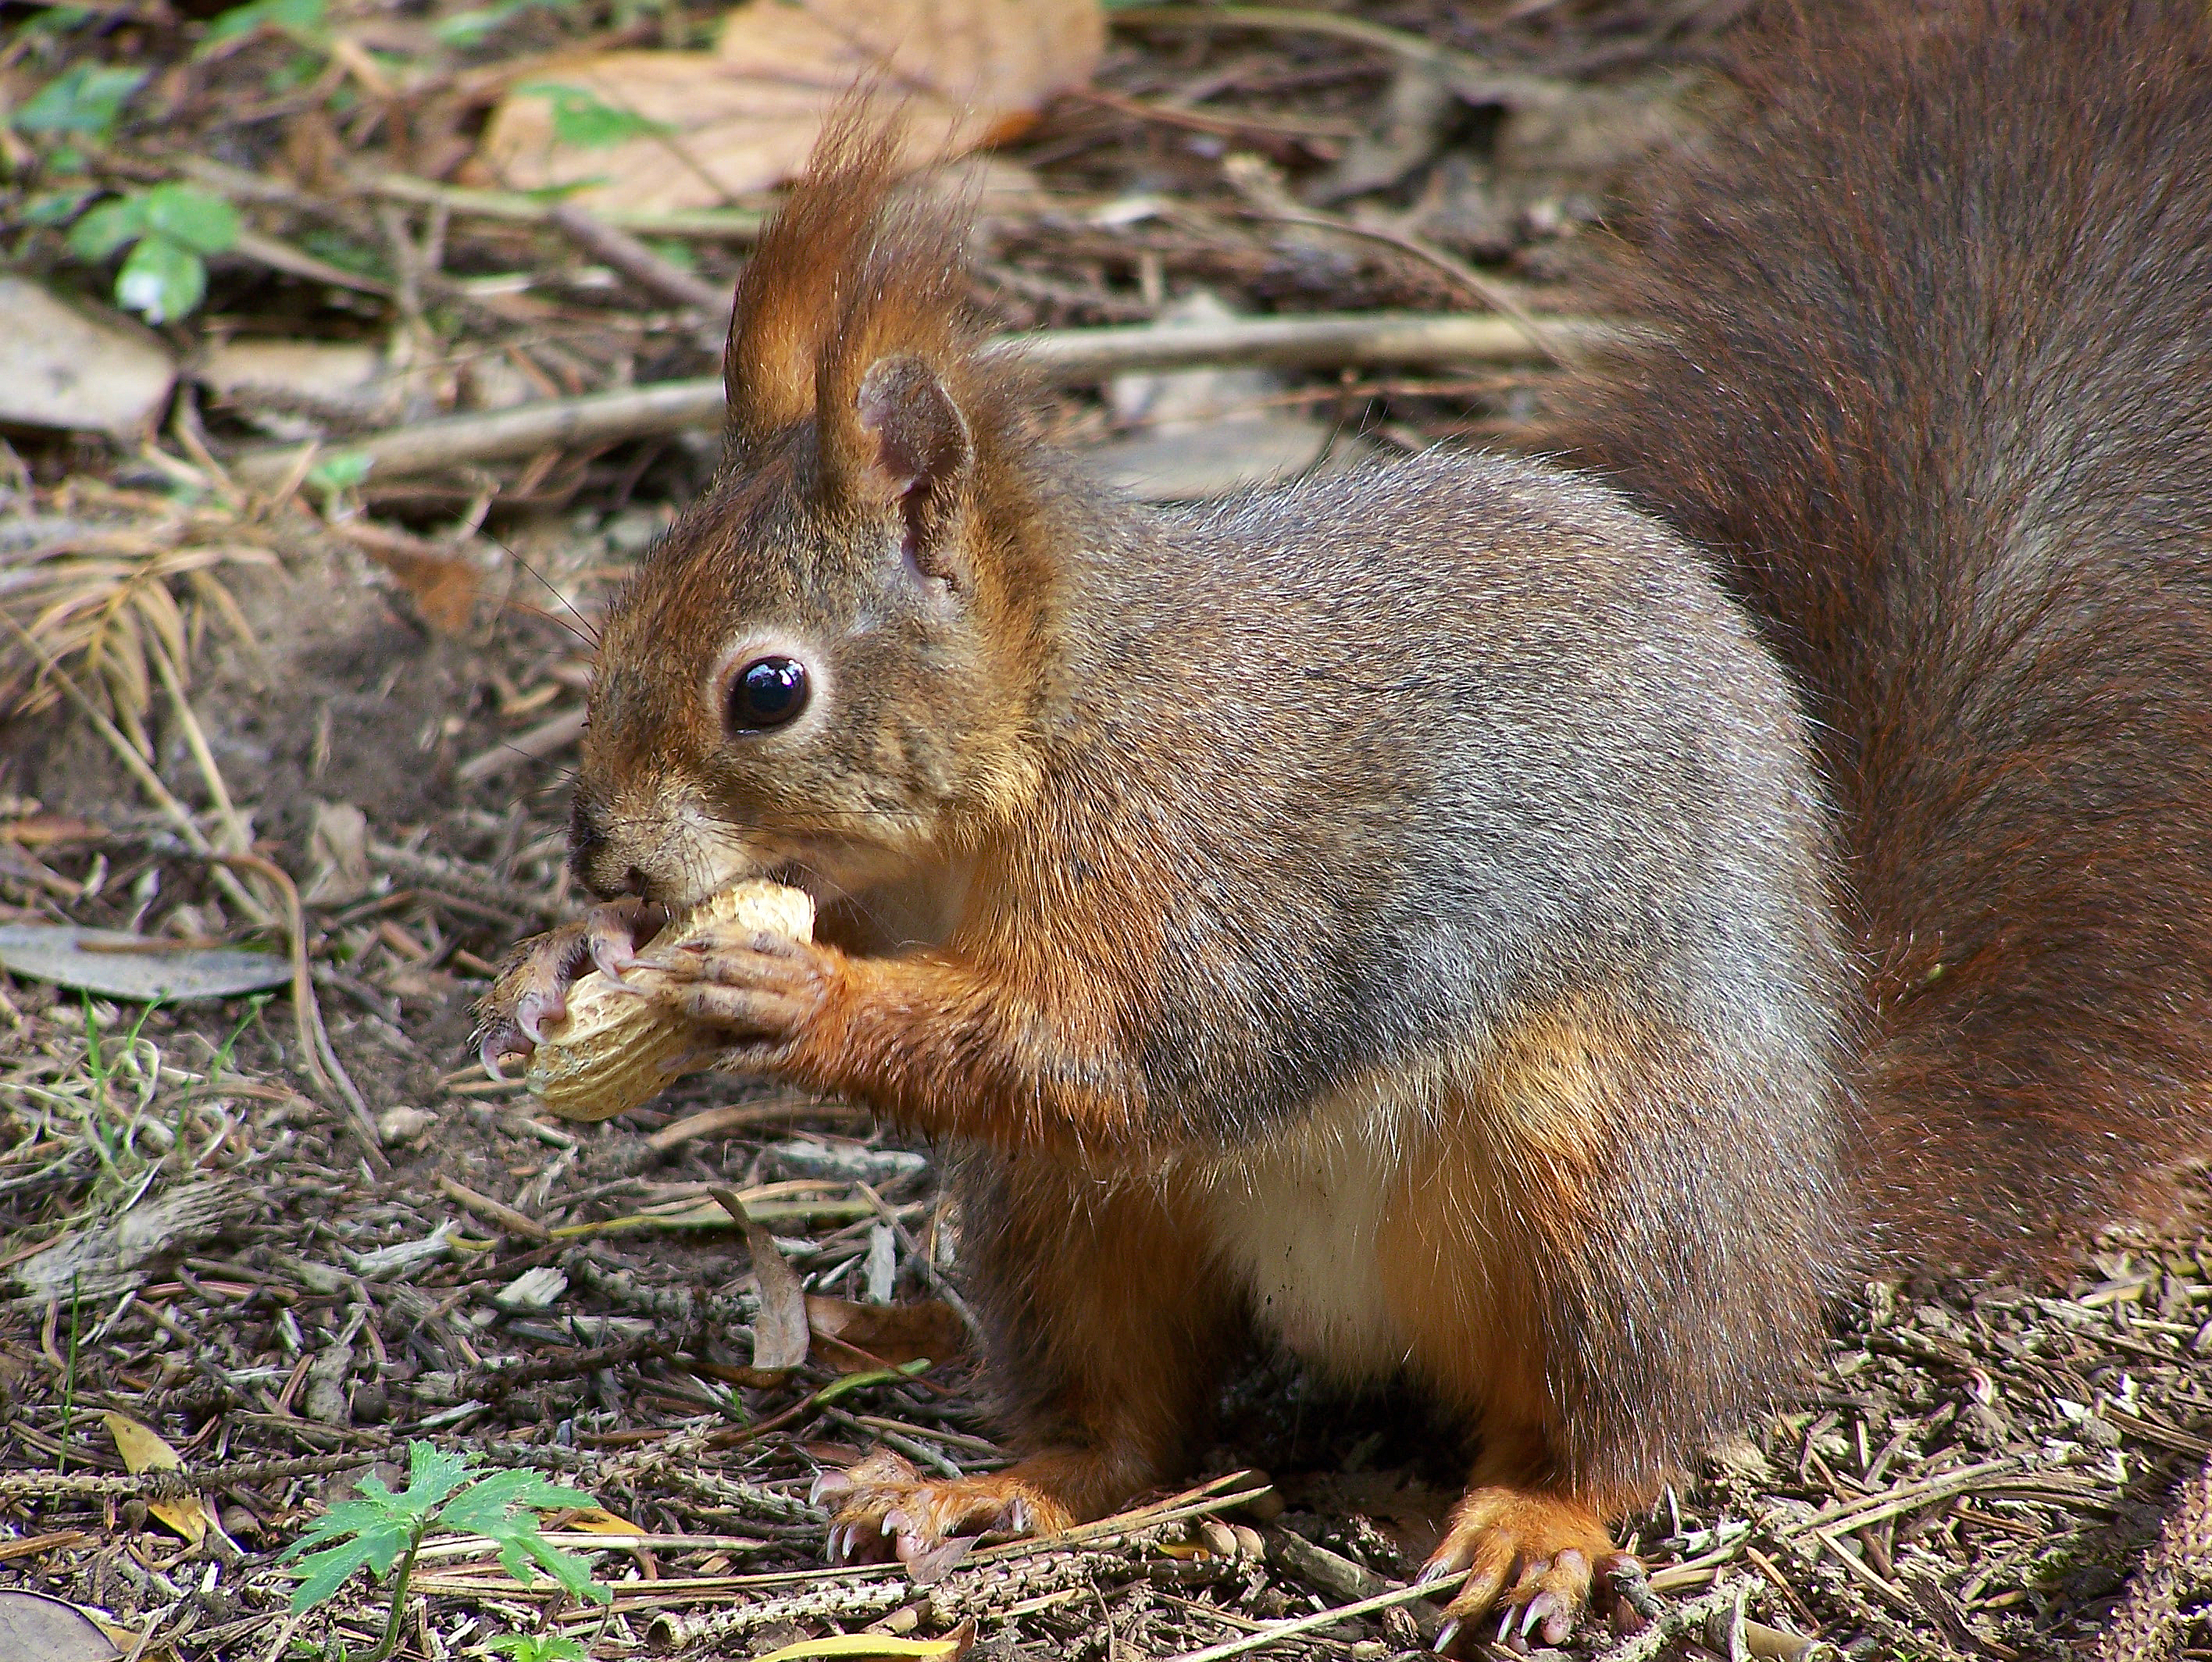 Red squirrel, Squirrel and Red on Pinterest.